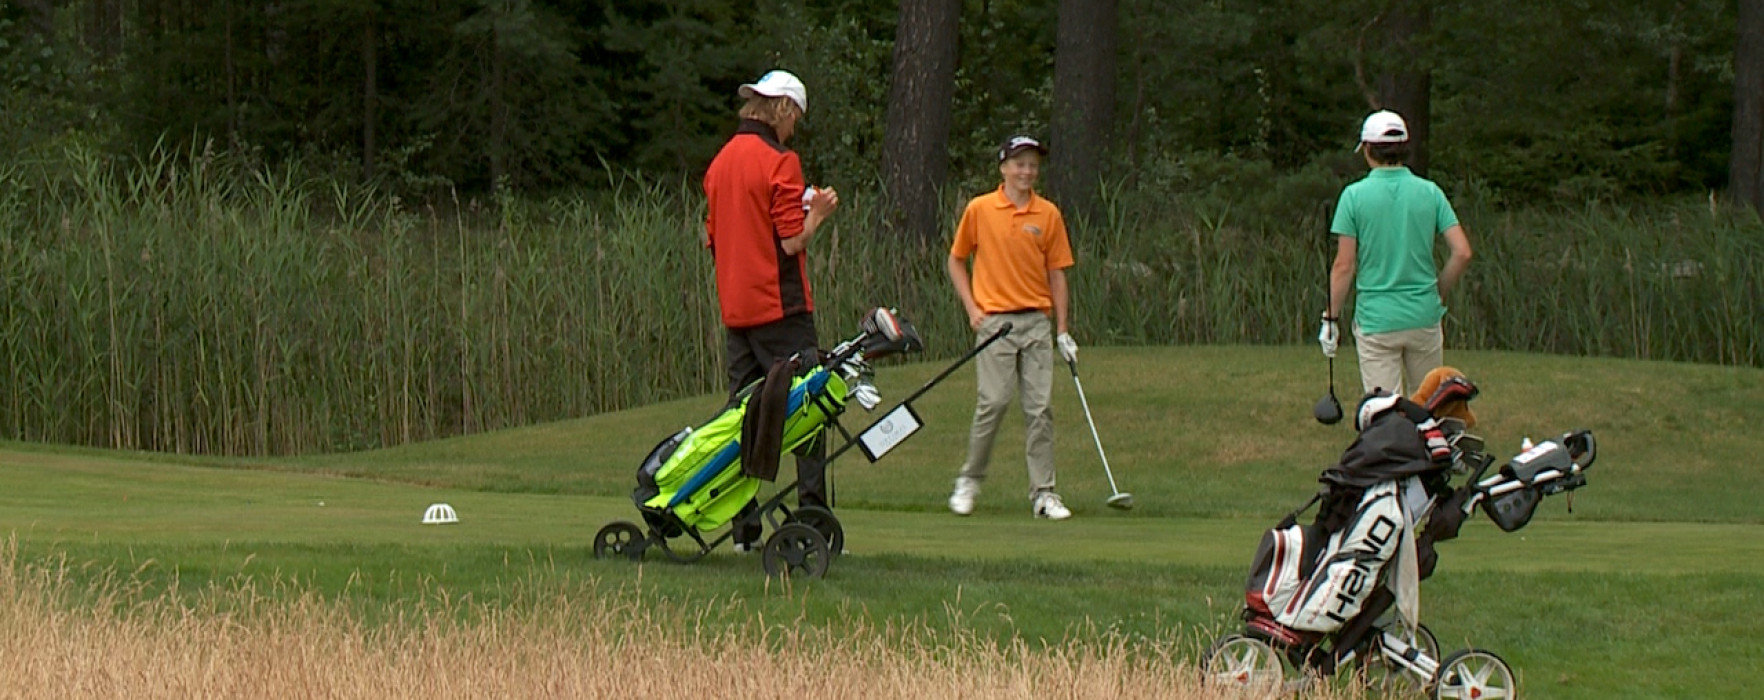 Glimt Sport – Jonas Blixt Invitational 2015